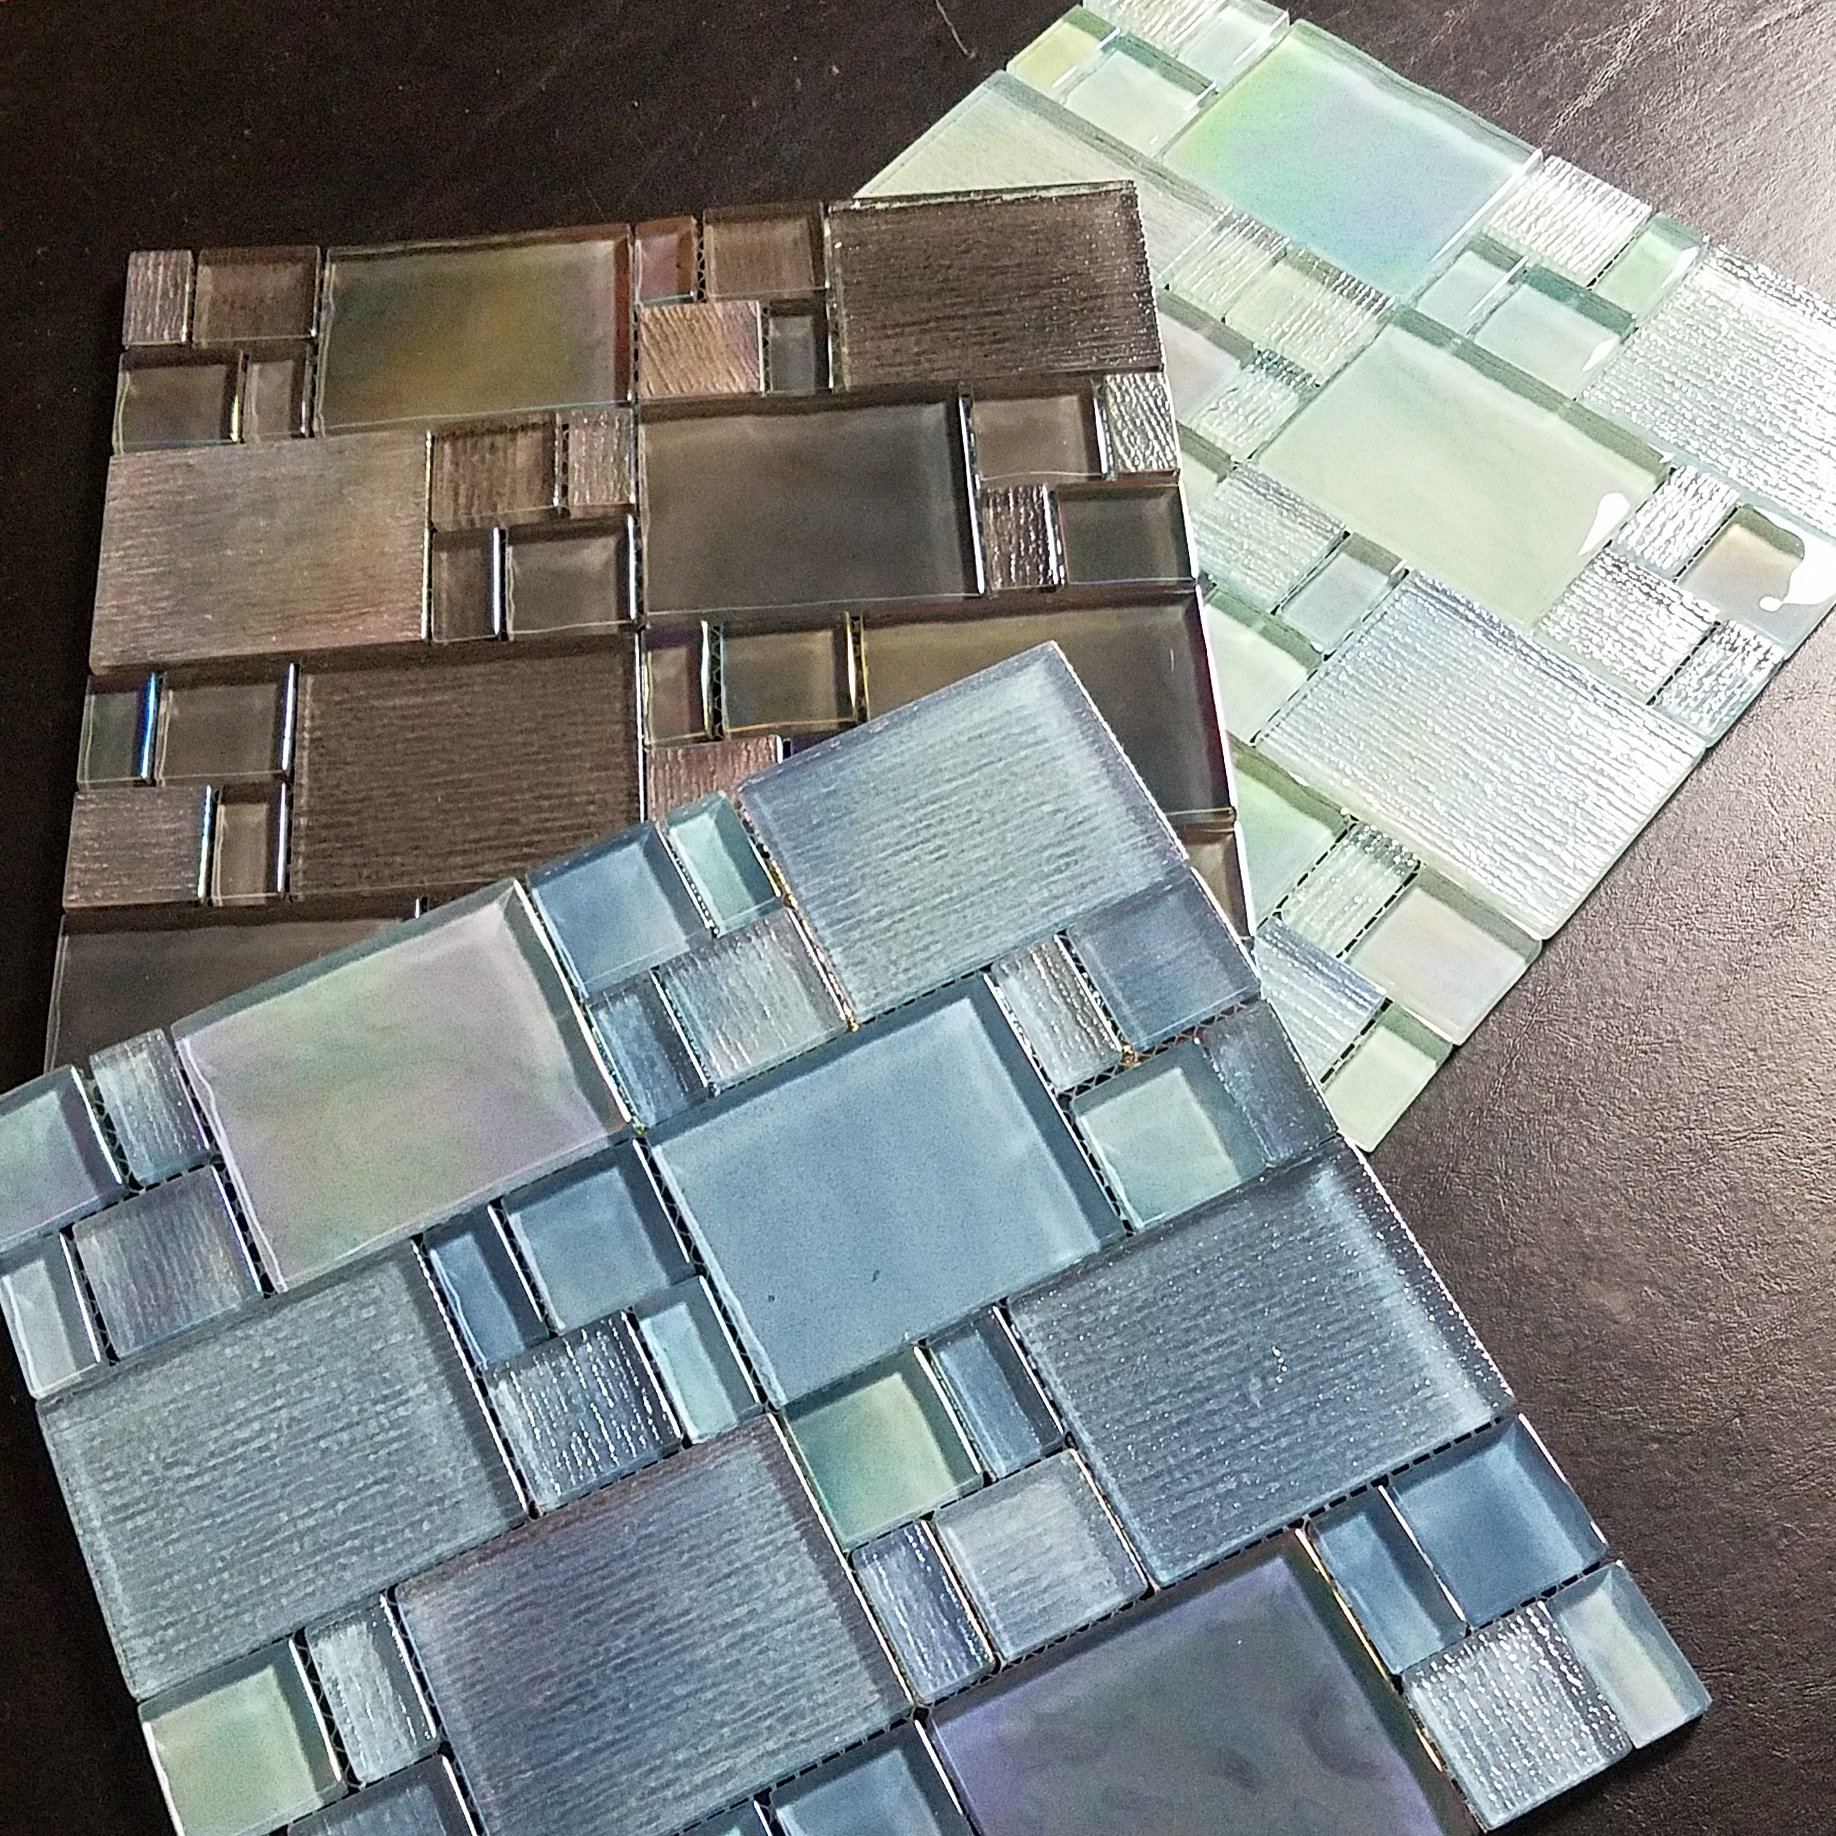 Glass Tile Oasis On Twitter These Magnificent Iridescent Glass Pool Tiles Can Be Used For A Waterline Line And Cut Into 3x6 6x6 6x12 Or 12x12 Pooltile Pool Blue Glasstile Waterfall Waterline Summer2019 Relaxing Tilewithstyle Outdoor Frostproof